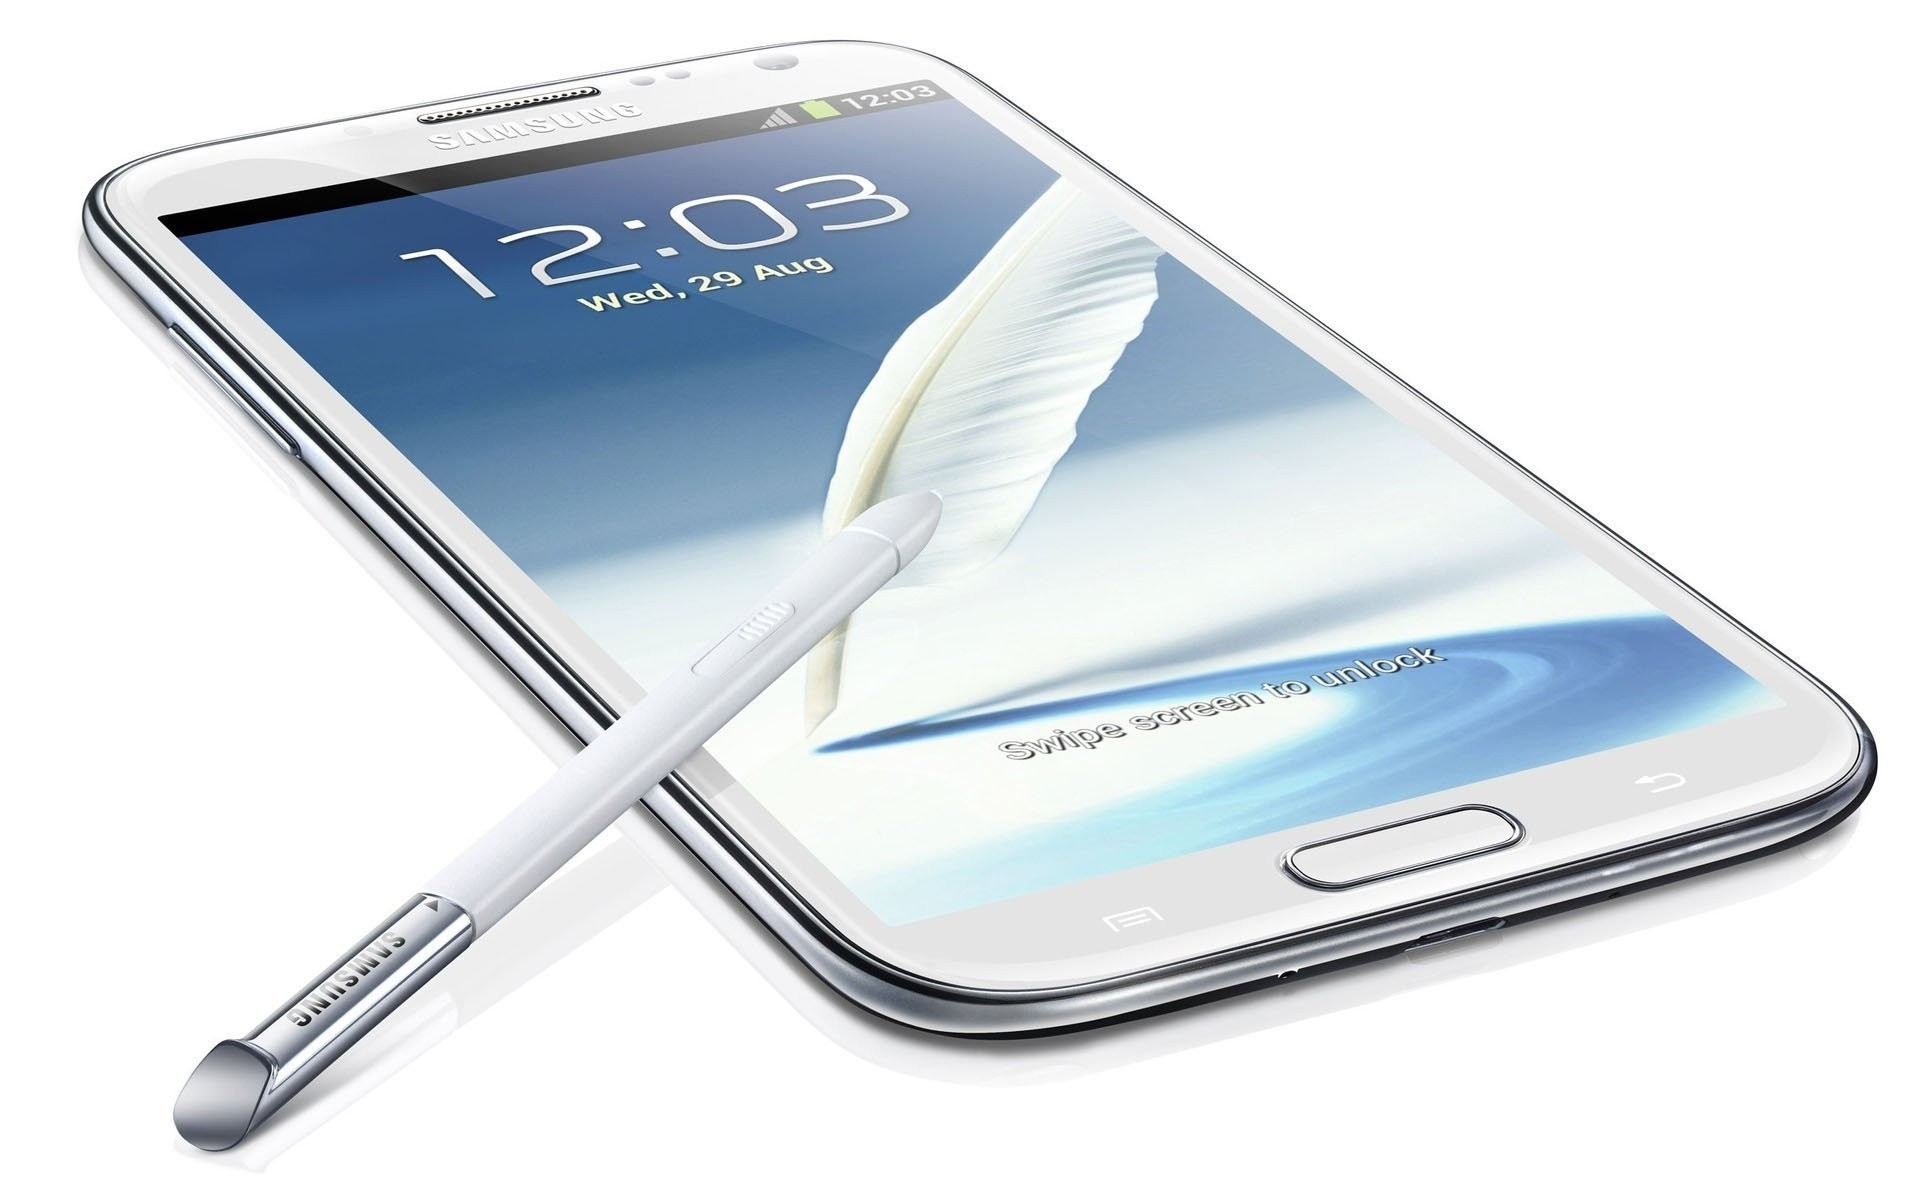 white samsung galaxy s3. android wallpapers for free.